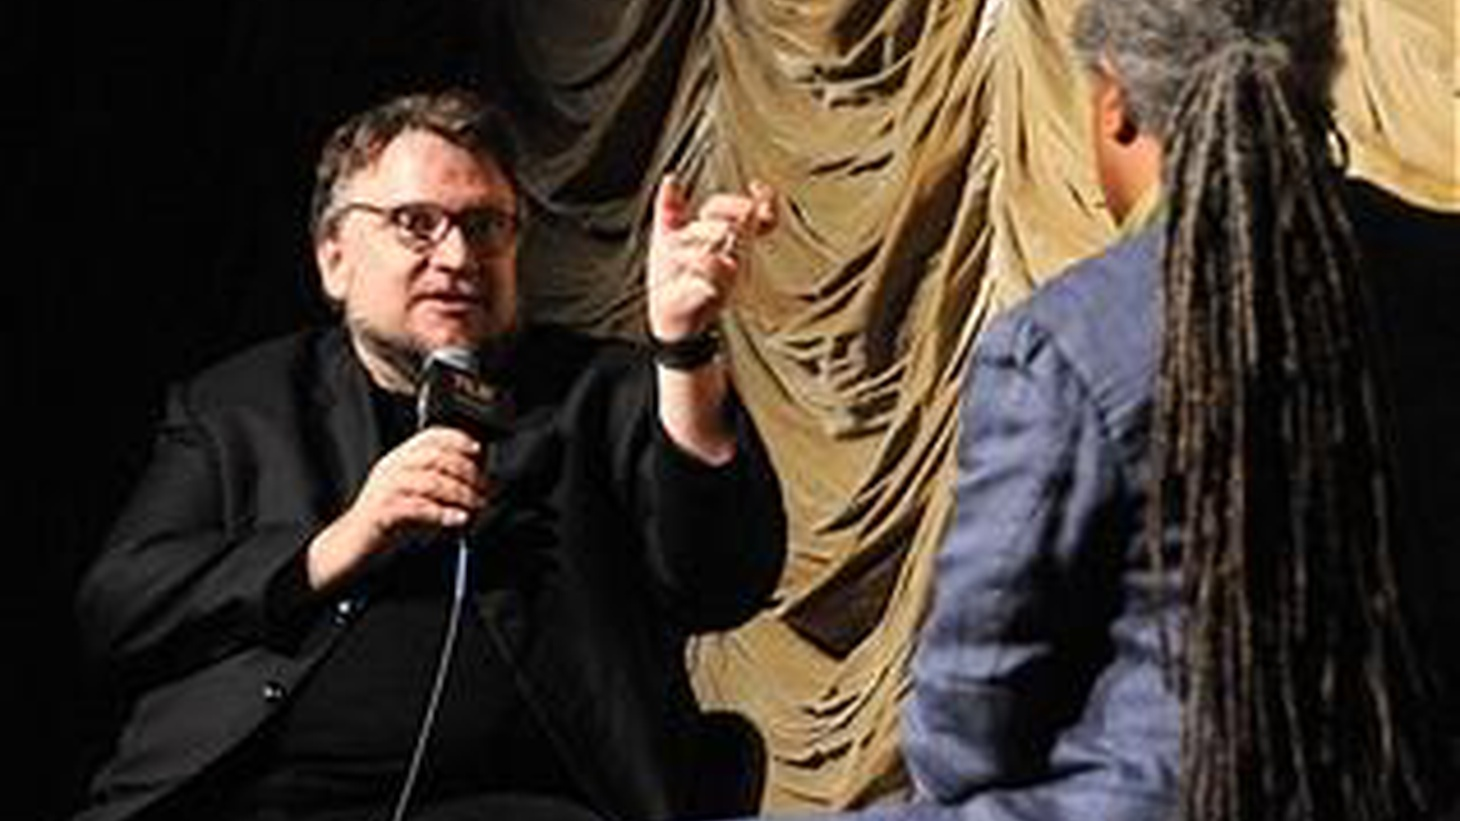 Guillermo del Toro joins Elvis for a Q&A after a screening ofPacific Rimat Film Independent at LACMA, to talk about his first film since 2008'sHellboy II.